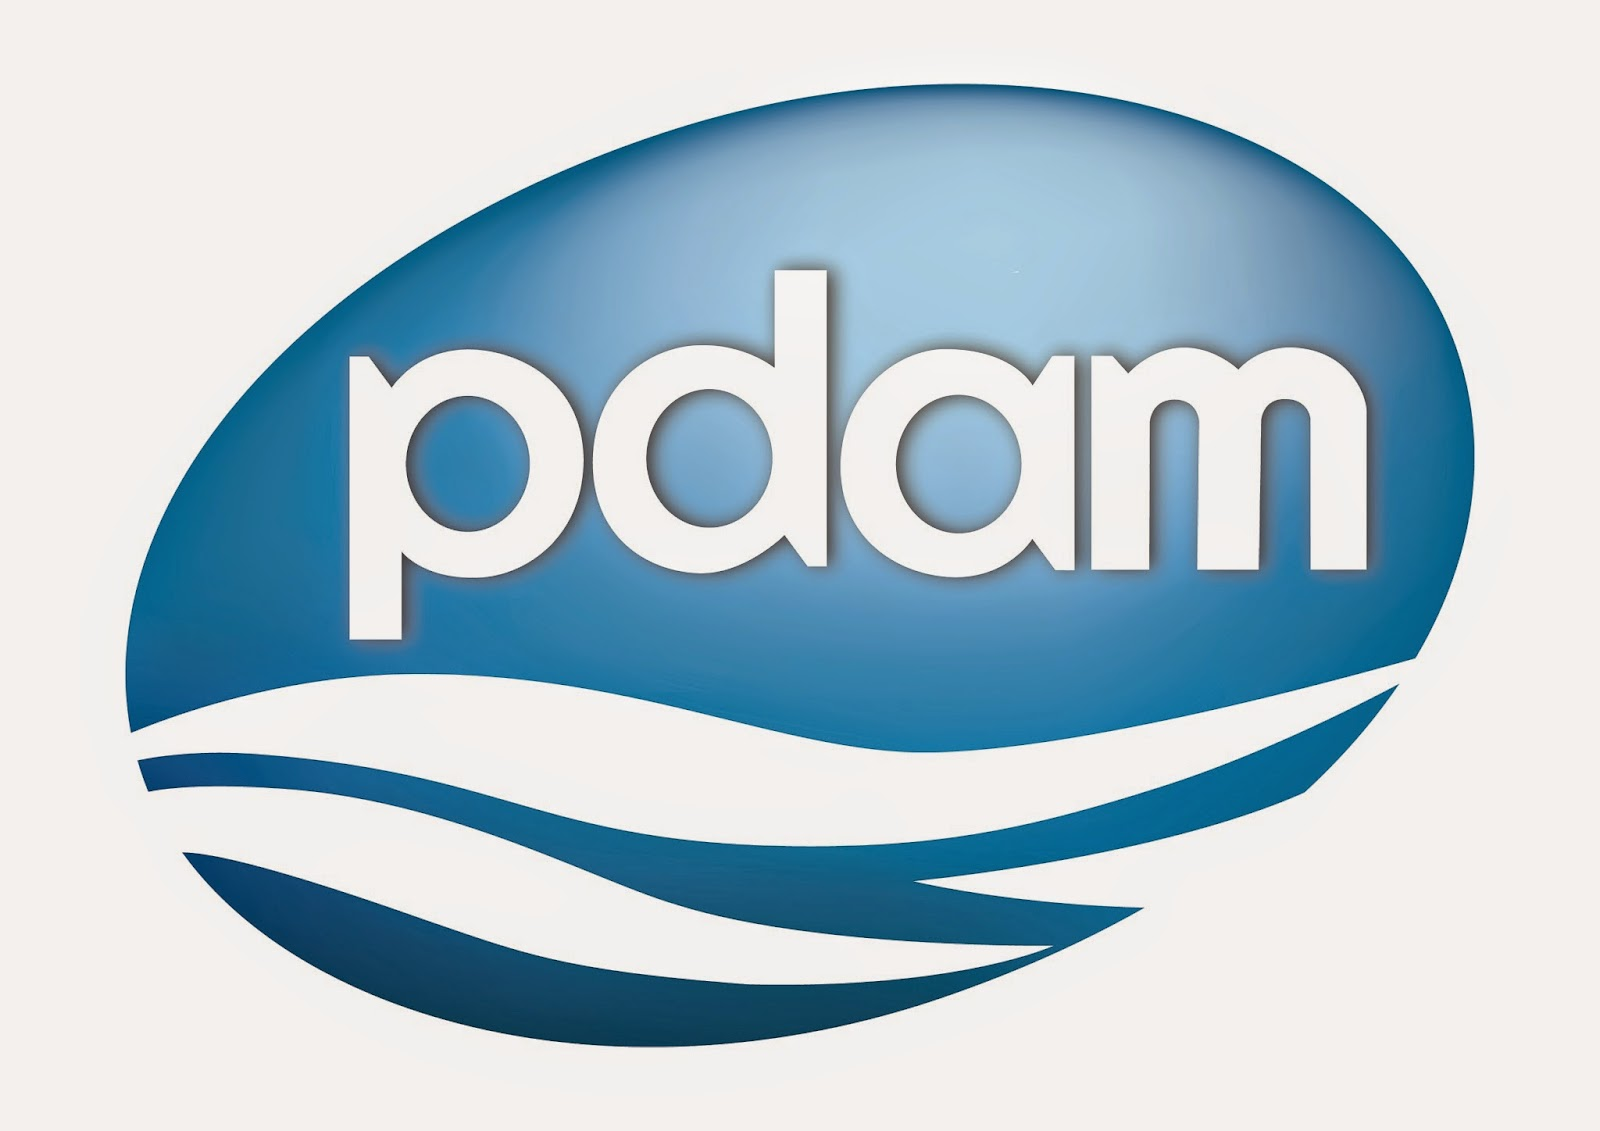 PDAM Logo Wallpaper